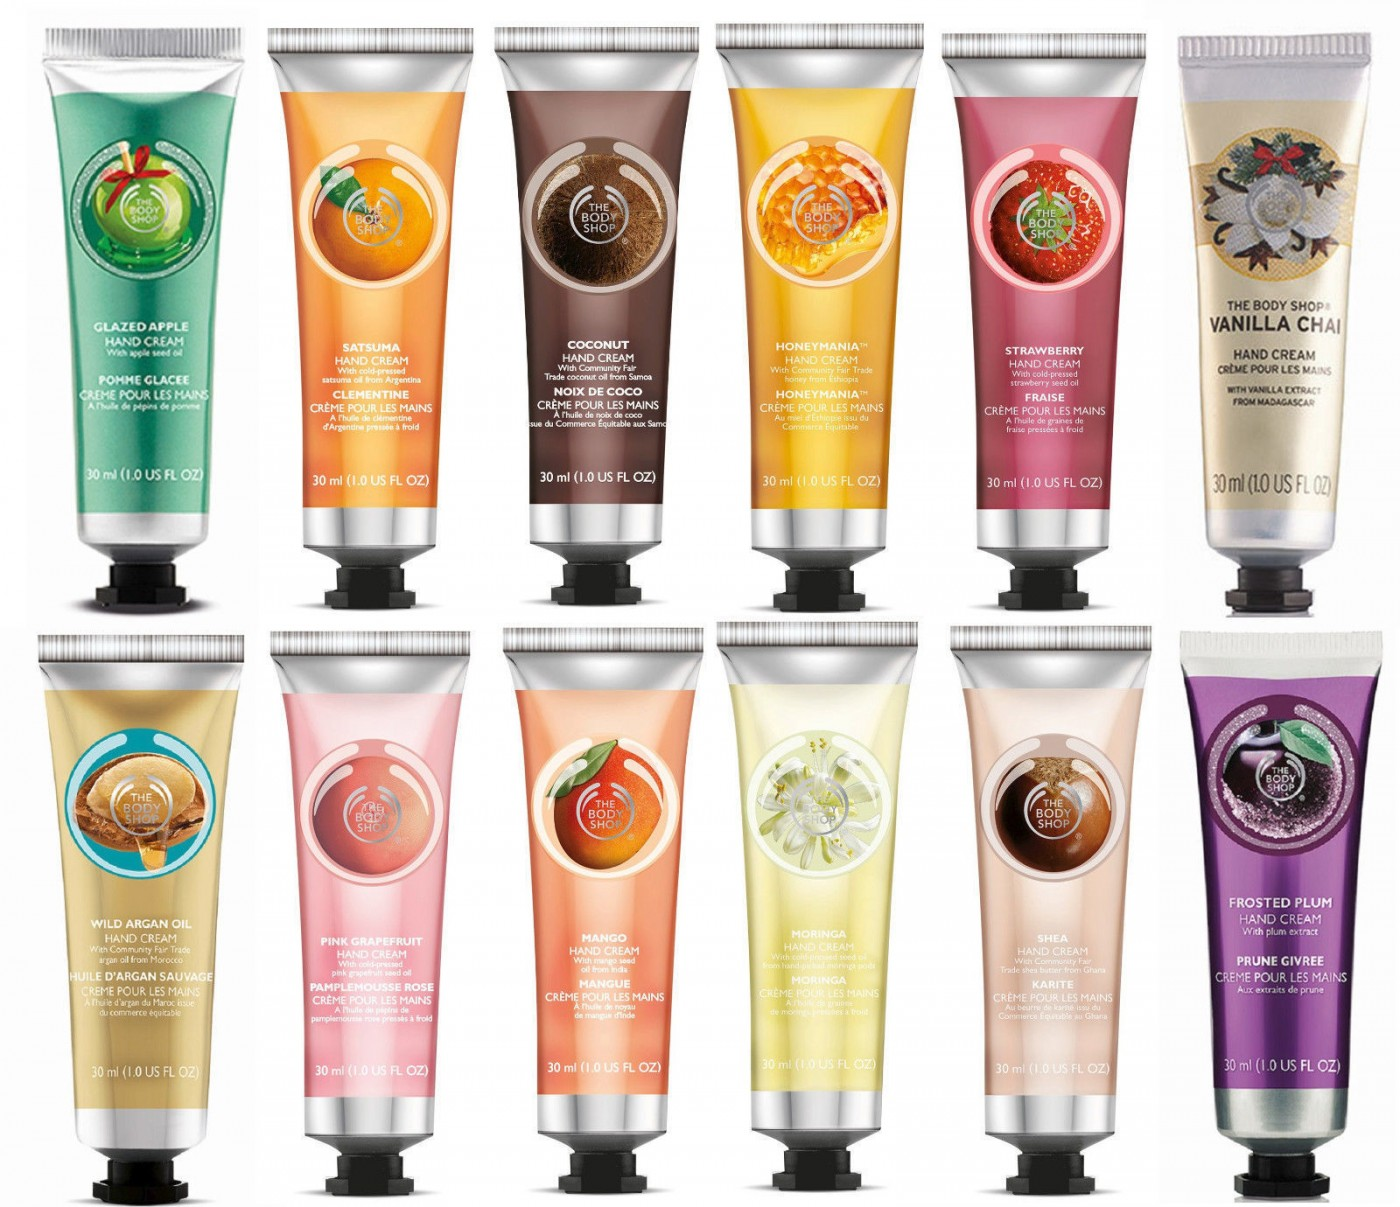 Image result for The Body Shop Hand Cream